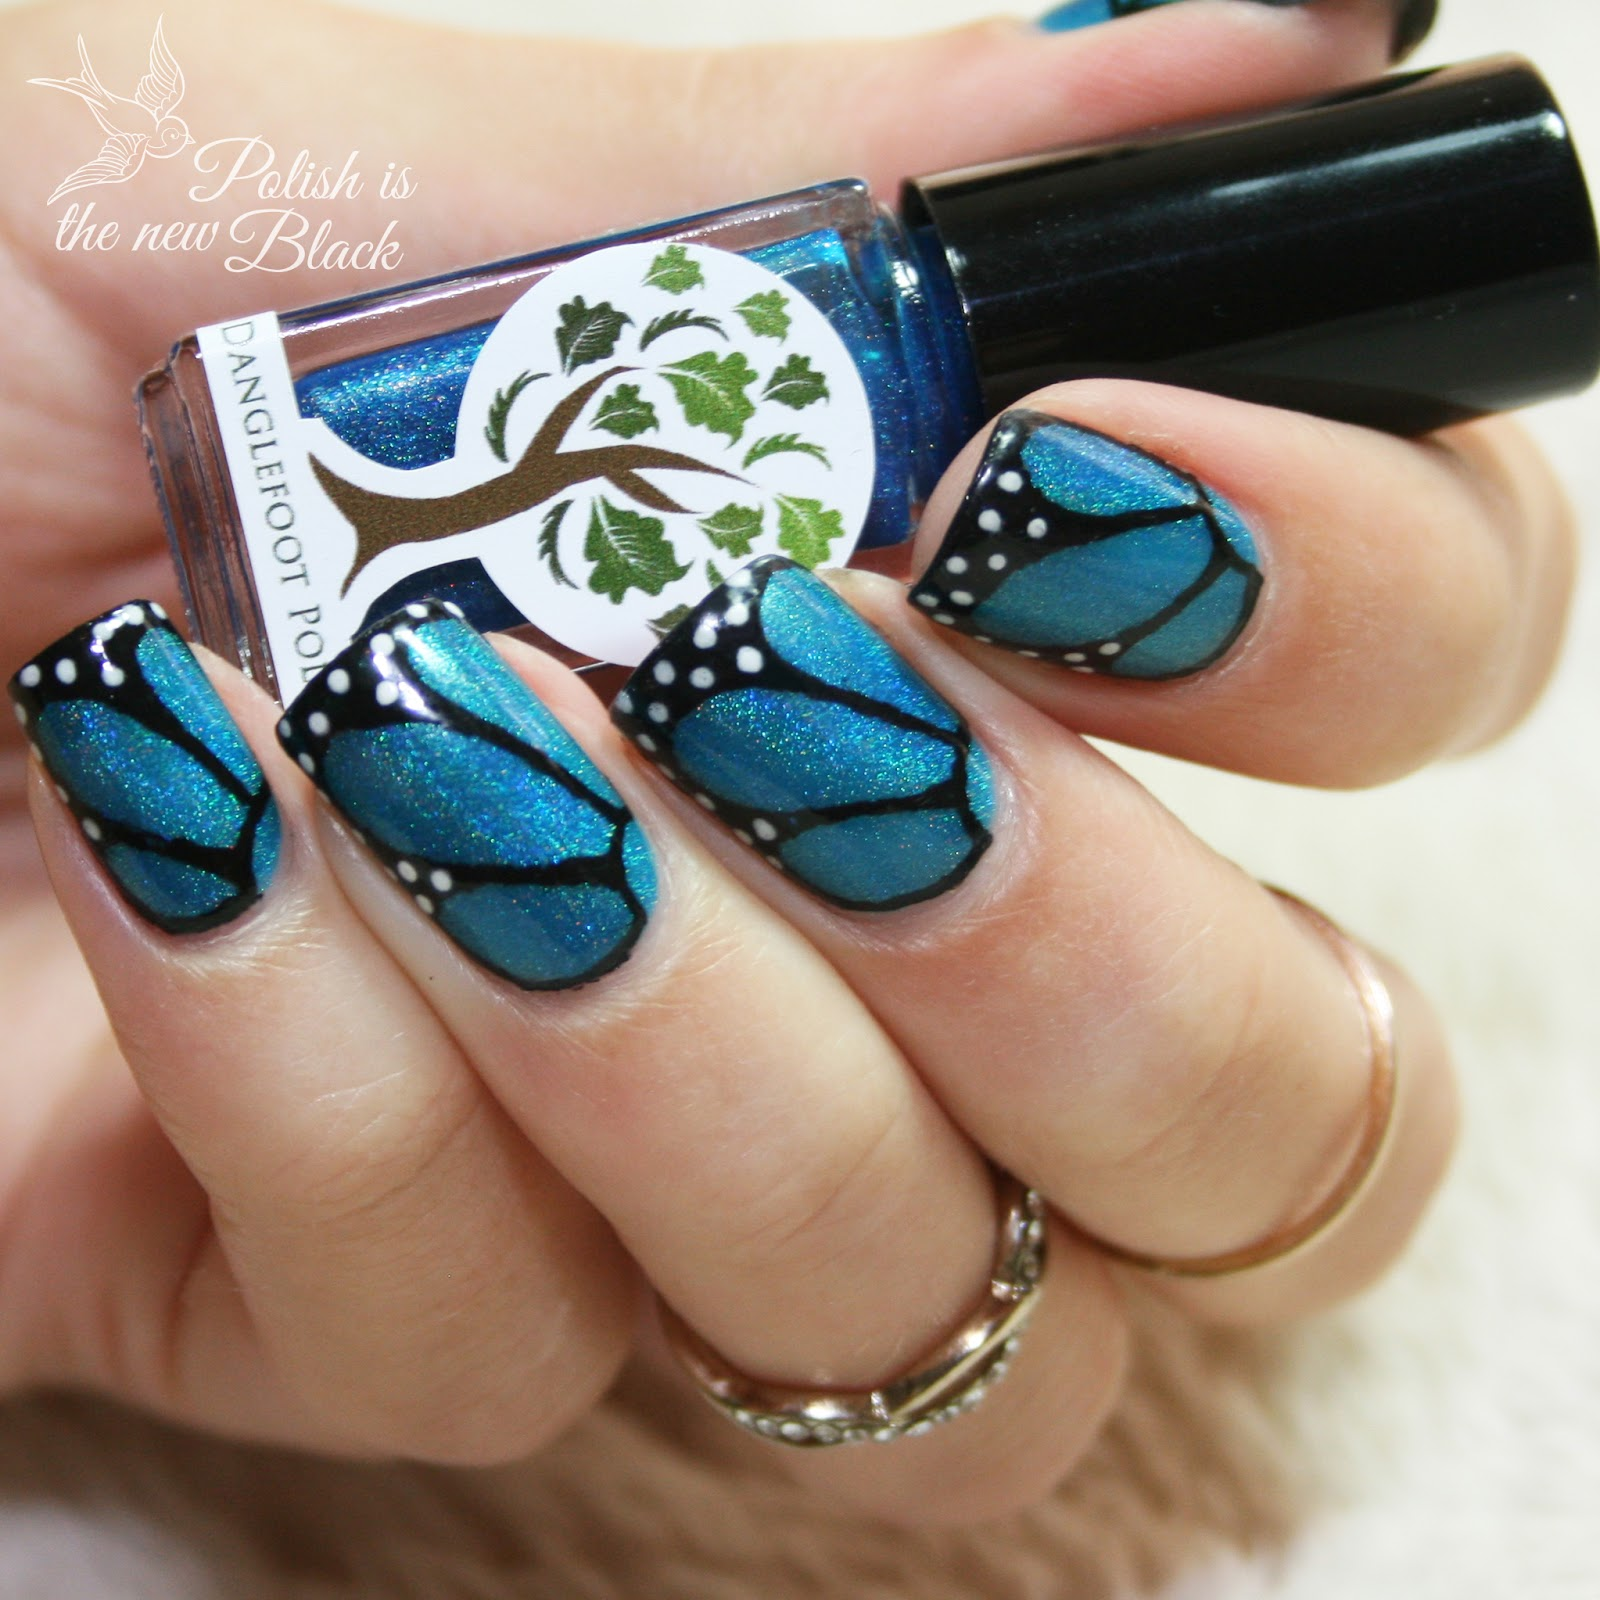 Butterfly Nails Polish Is The New Black